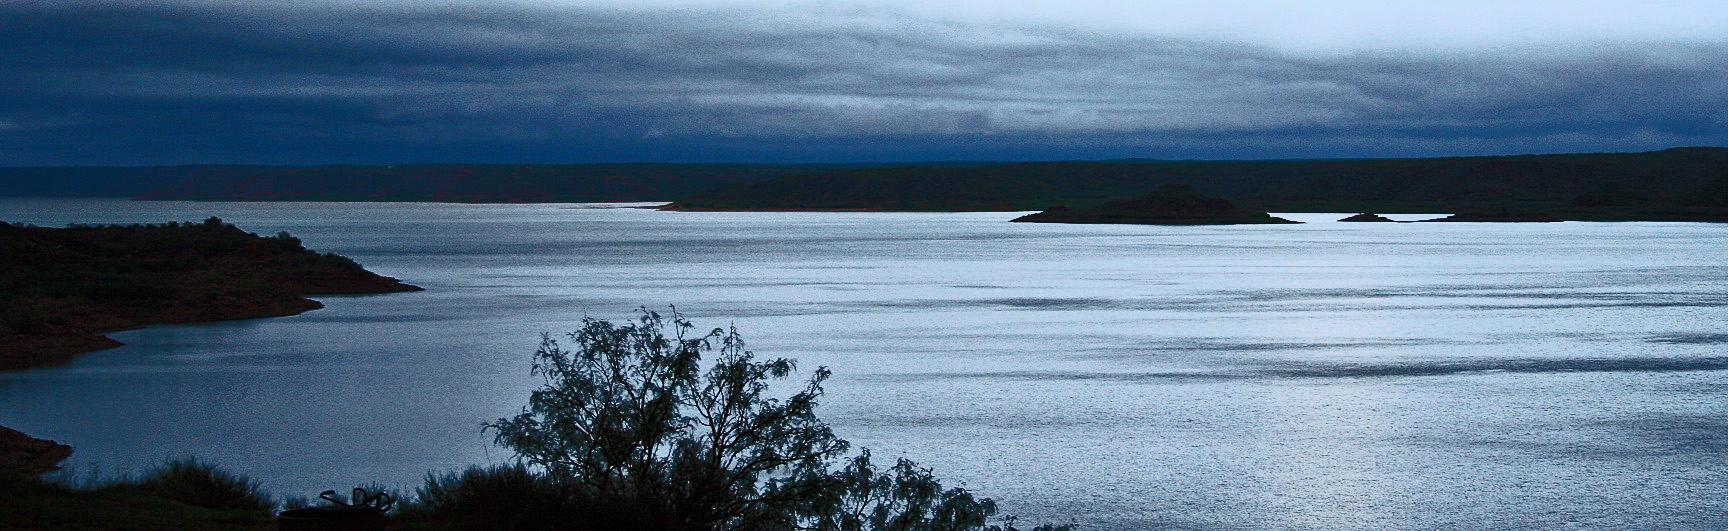 lake meredith - Copy (2)